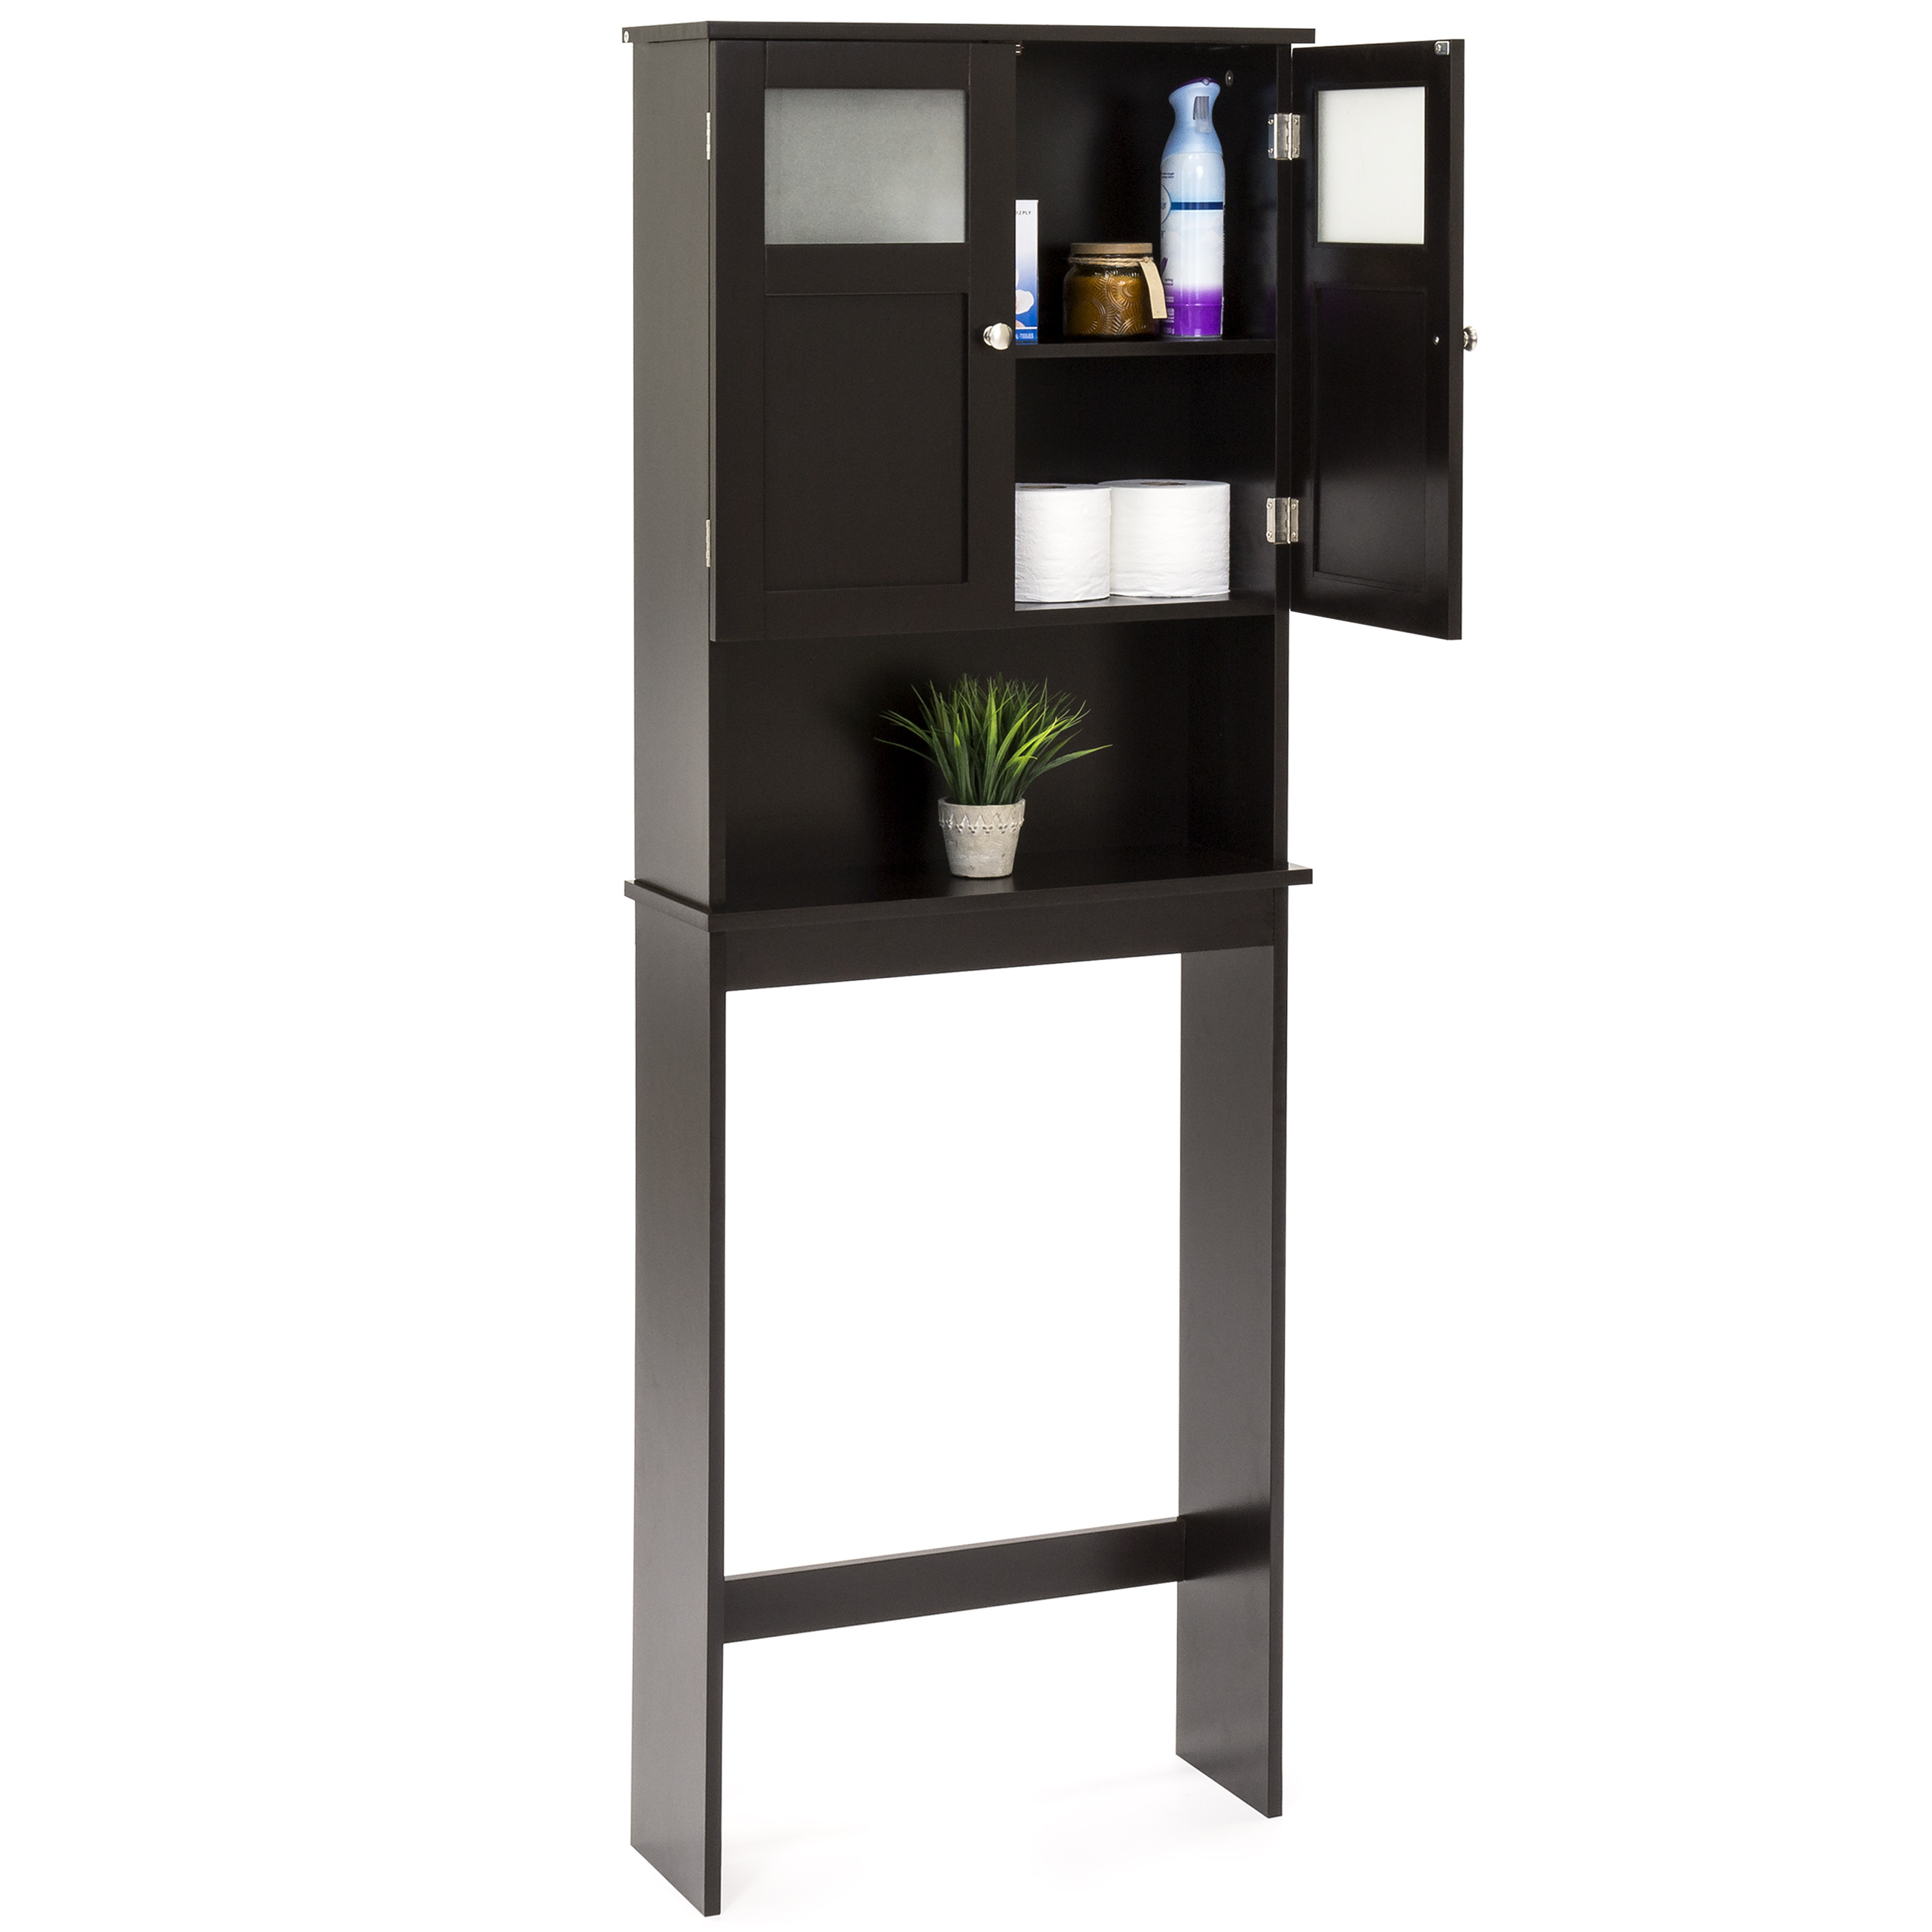 Best Choice Products Bathroom Over-the-Toilet Space Saver Storage Cabinet by Best Choice Products